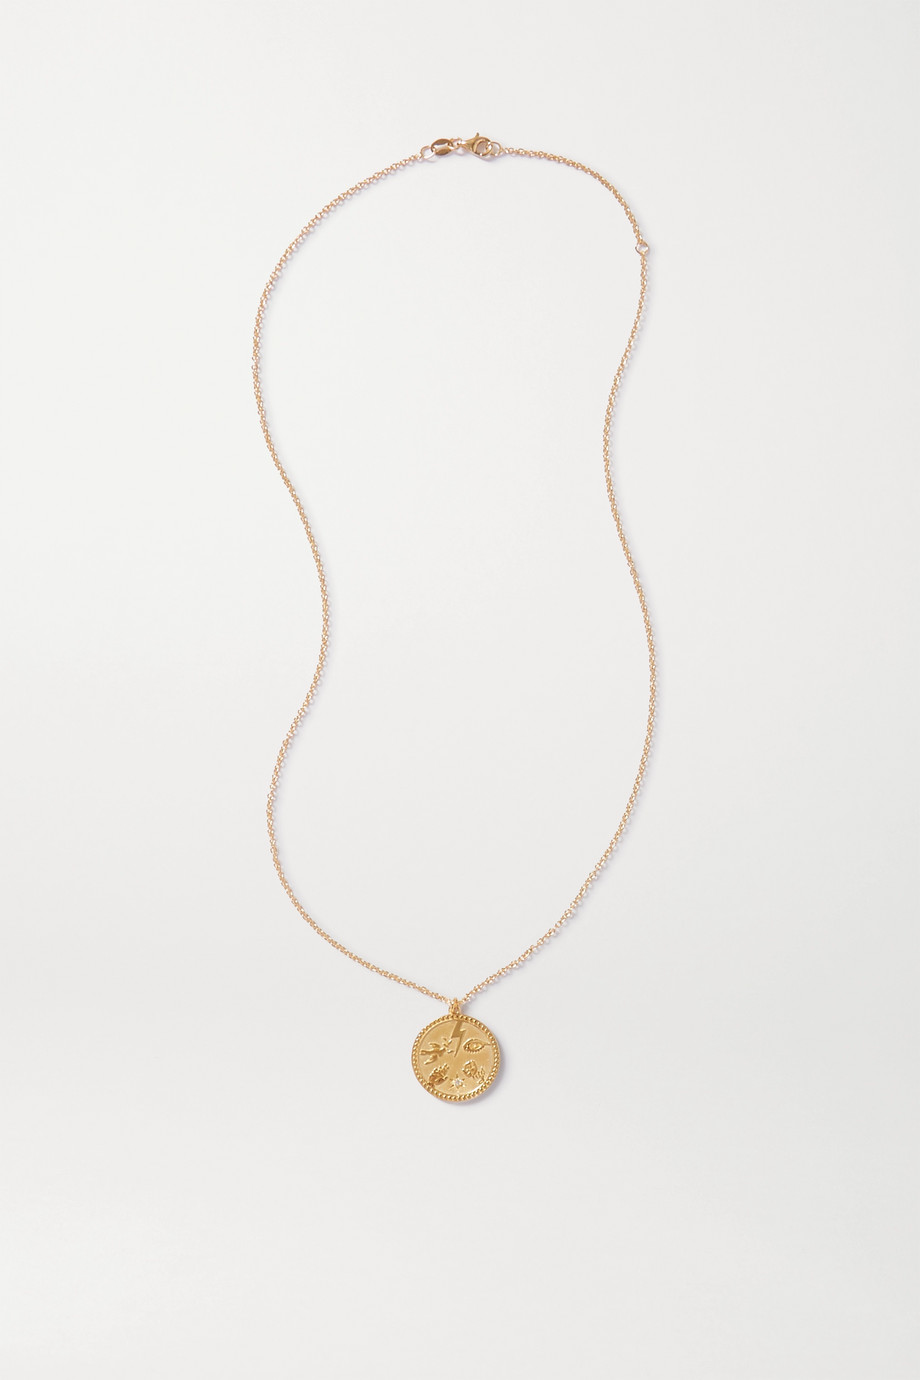 Meadowlark Talisman gold-plated diamond necklace